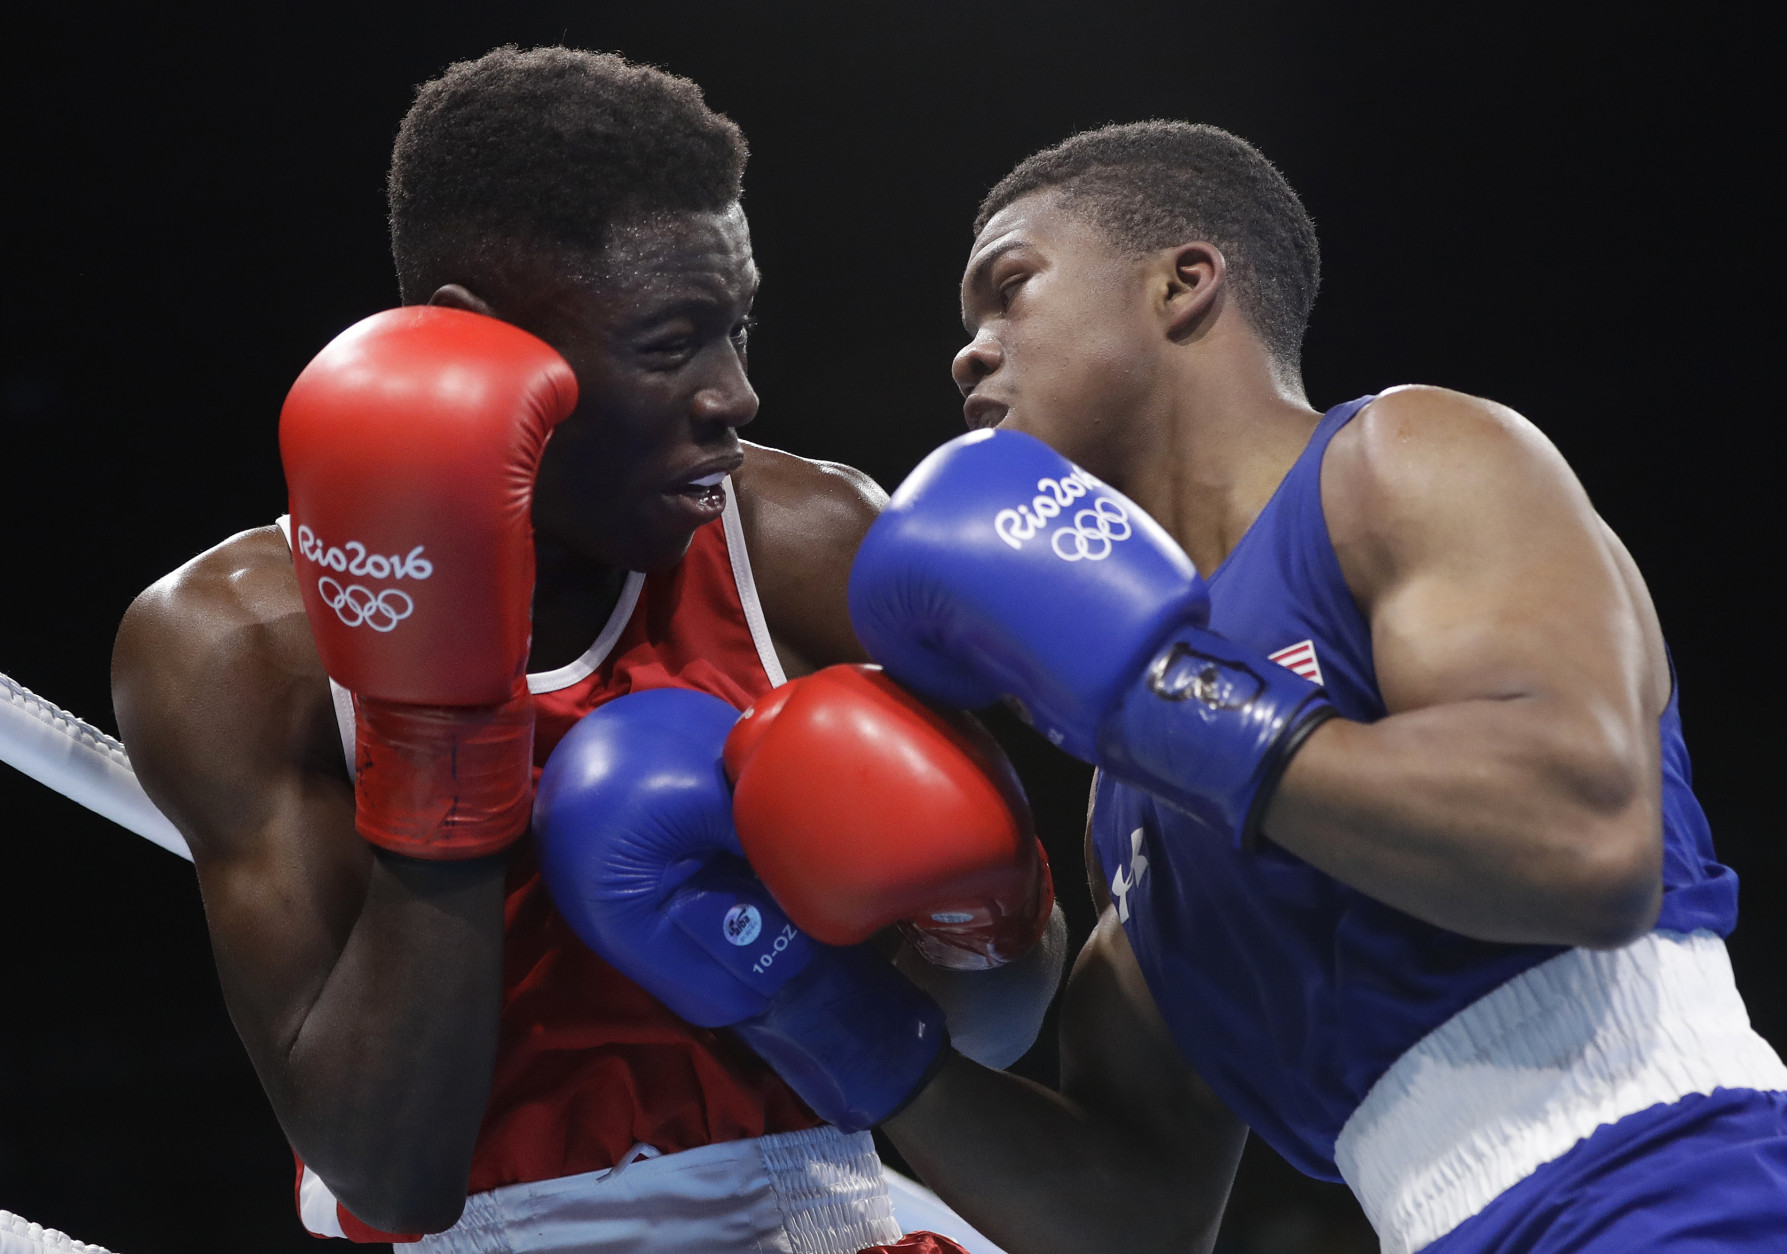 Haiti's Haiti's Richardson Hitchins, left, fights United State's Gary Russell during a men's light welterweight 64-kg preliminary boxing match at the 2016 Summer Olympics in Rio de Janeiro, Brazil, Wednesday, Aug. 10, 2016. (AP Photo/Frank Franklin II)